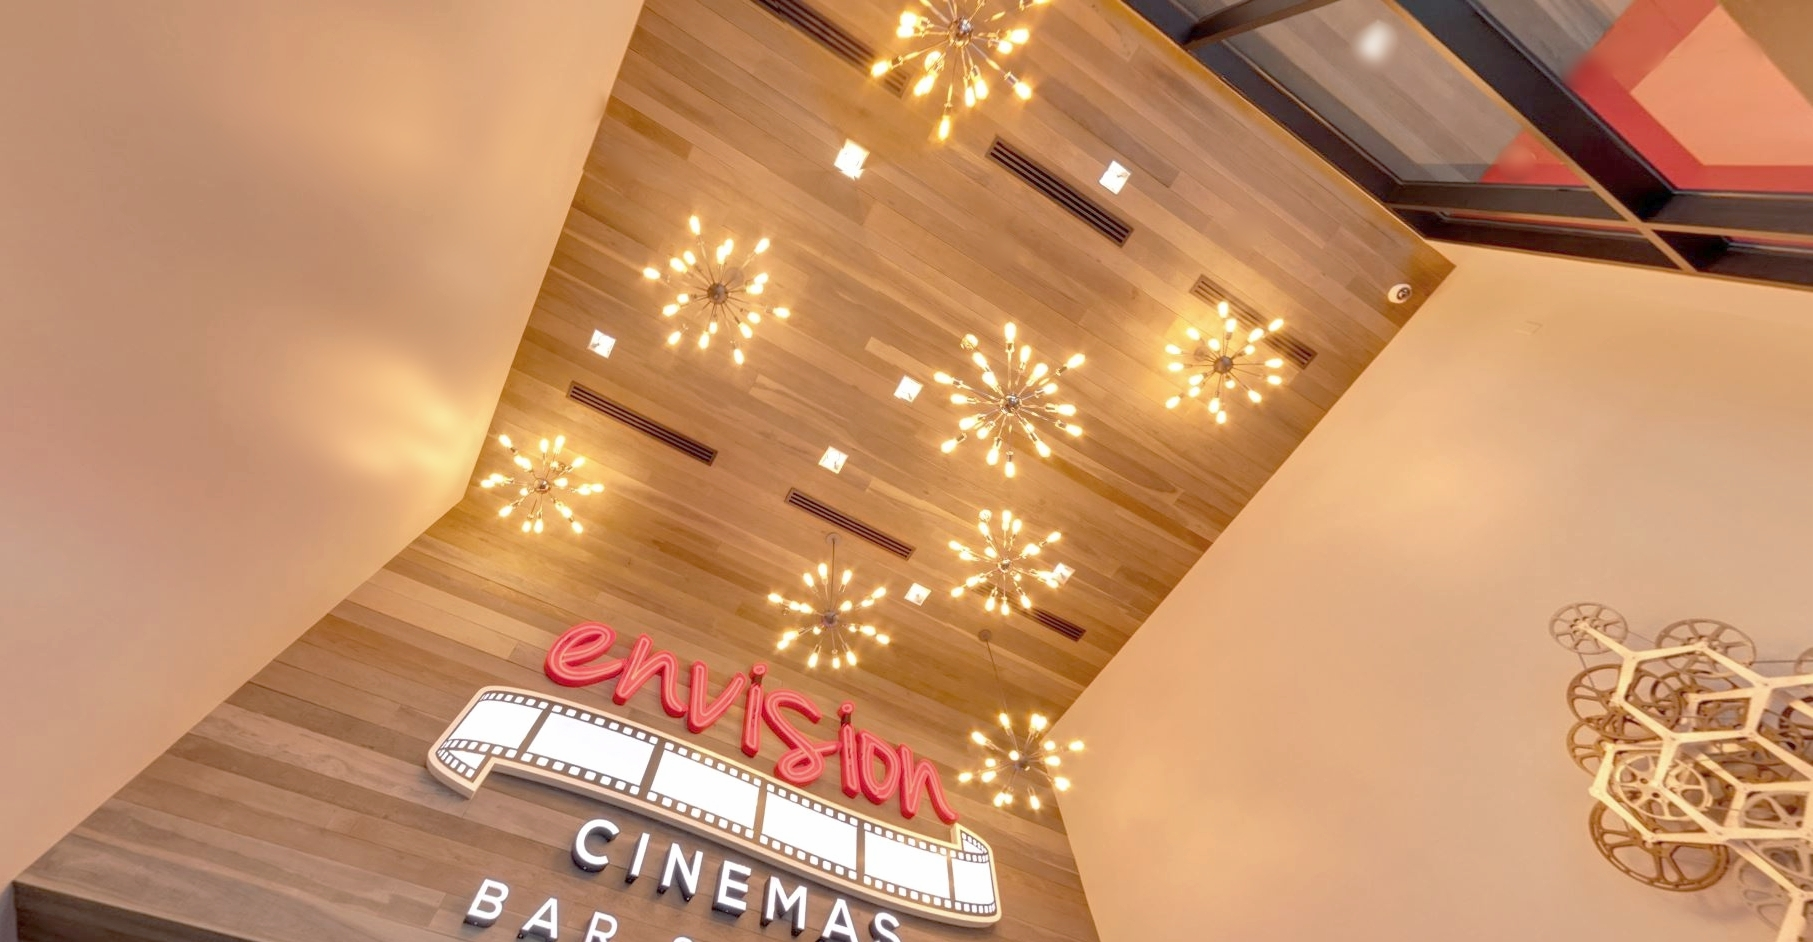 Envision Movie Theater Eutree Forest Free Pecan Custom Wood Wall Paneling 8.JPG